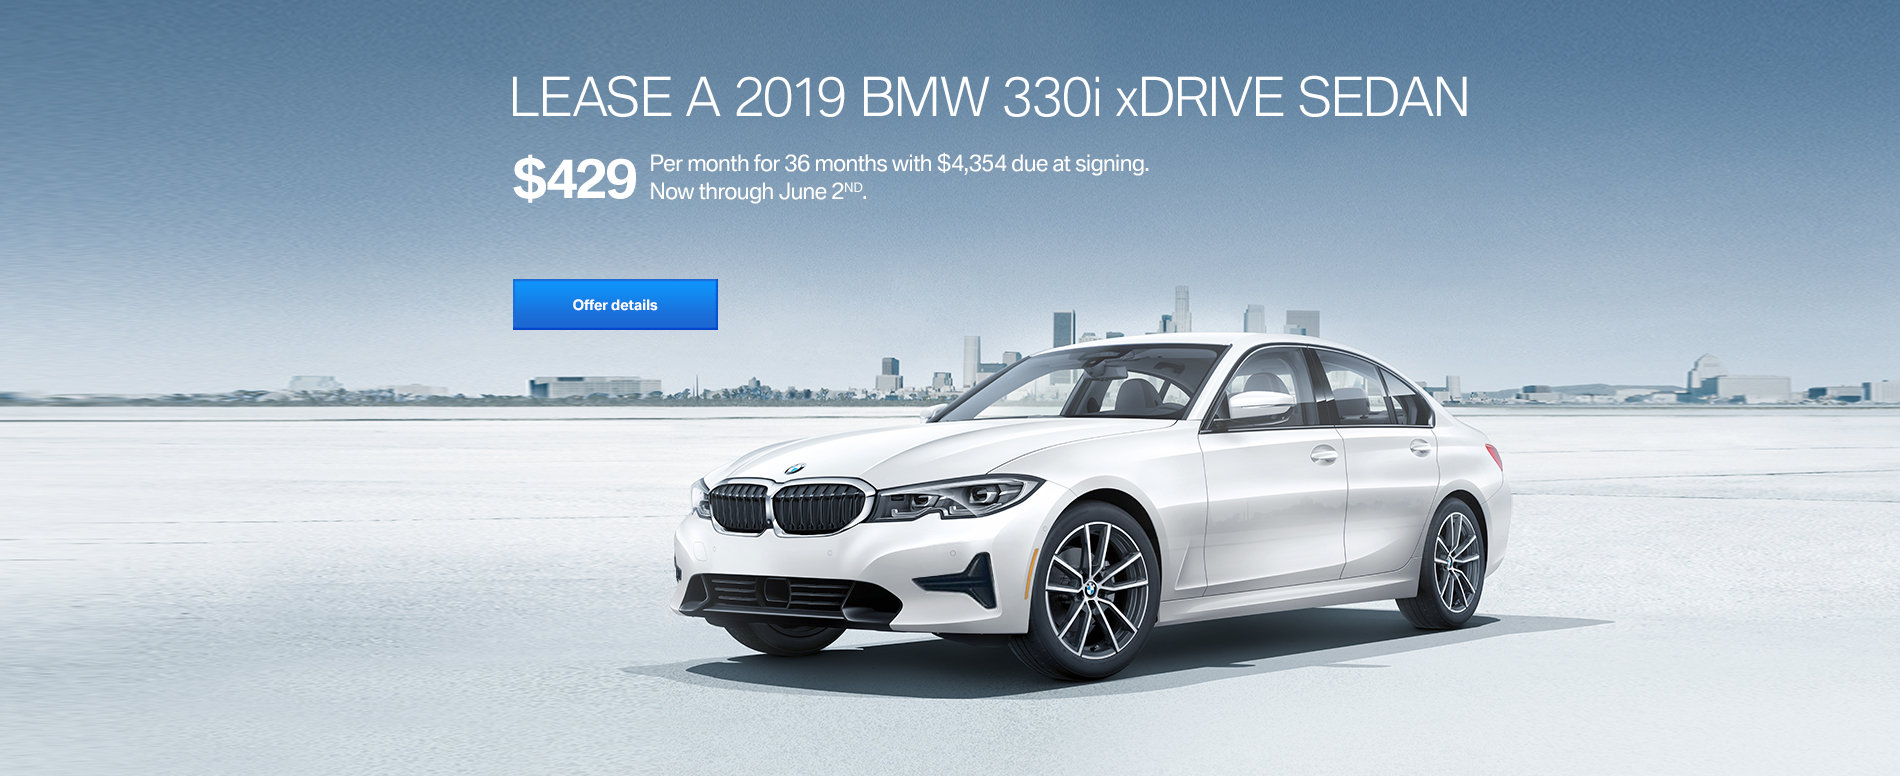 LEASE A 2019 BMW 330i xDRIVE FOR $429/MONTH FOR 36 MONTHS WITH $